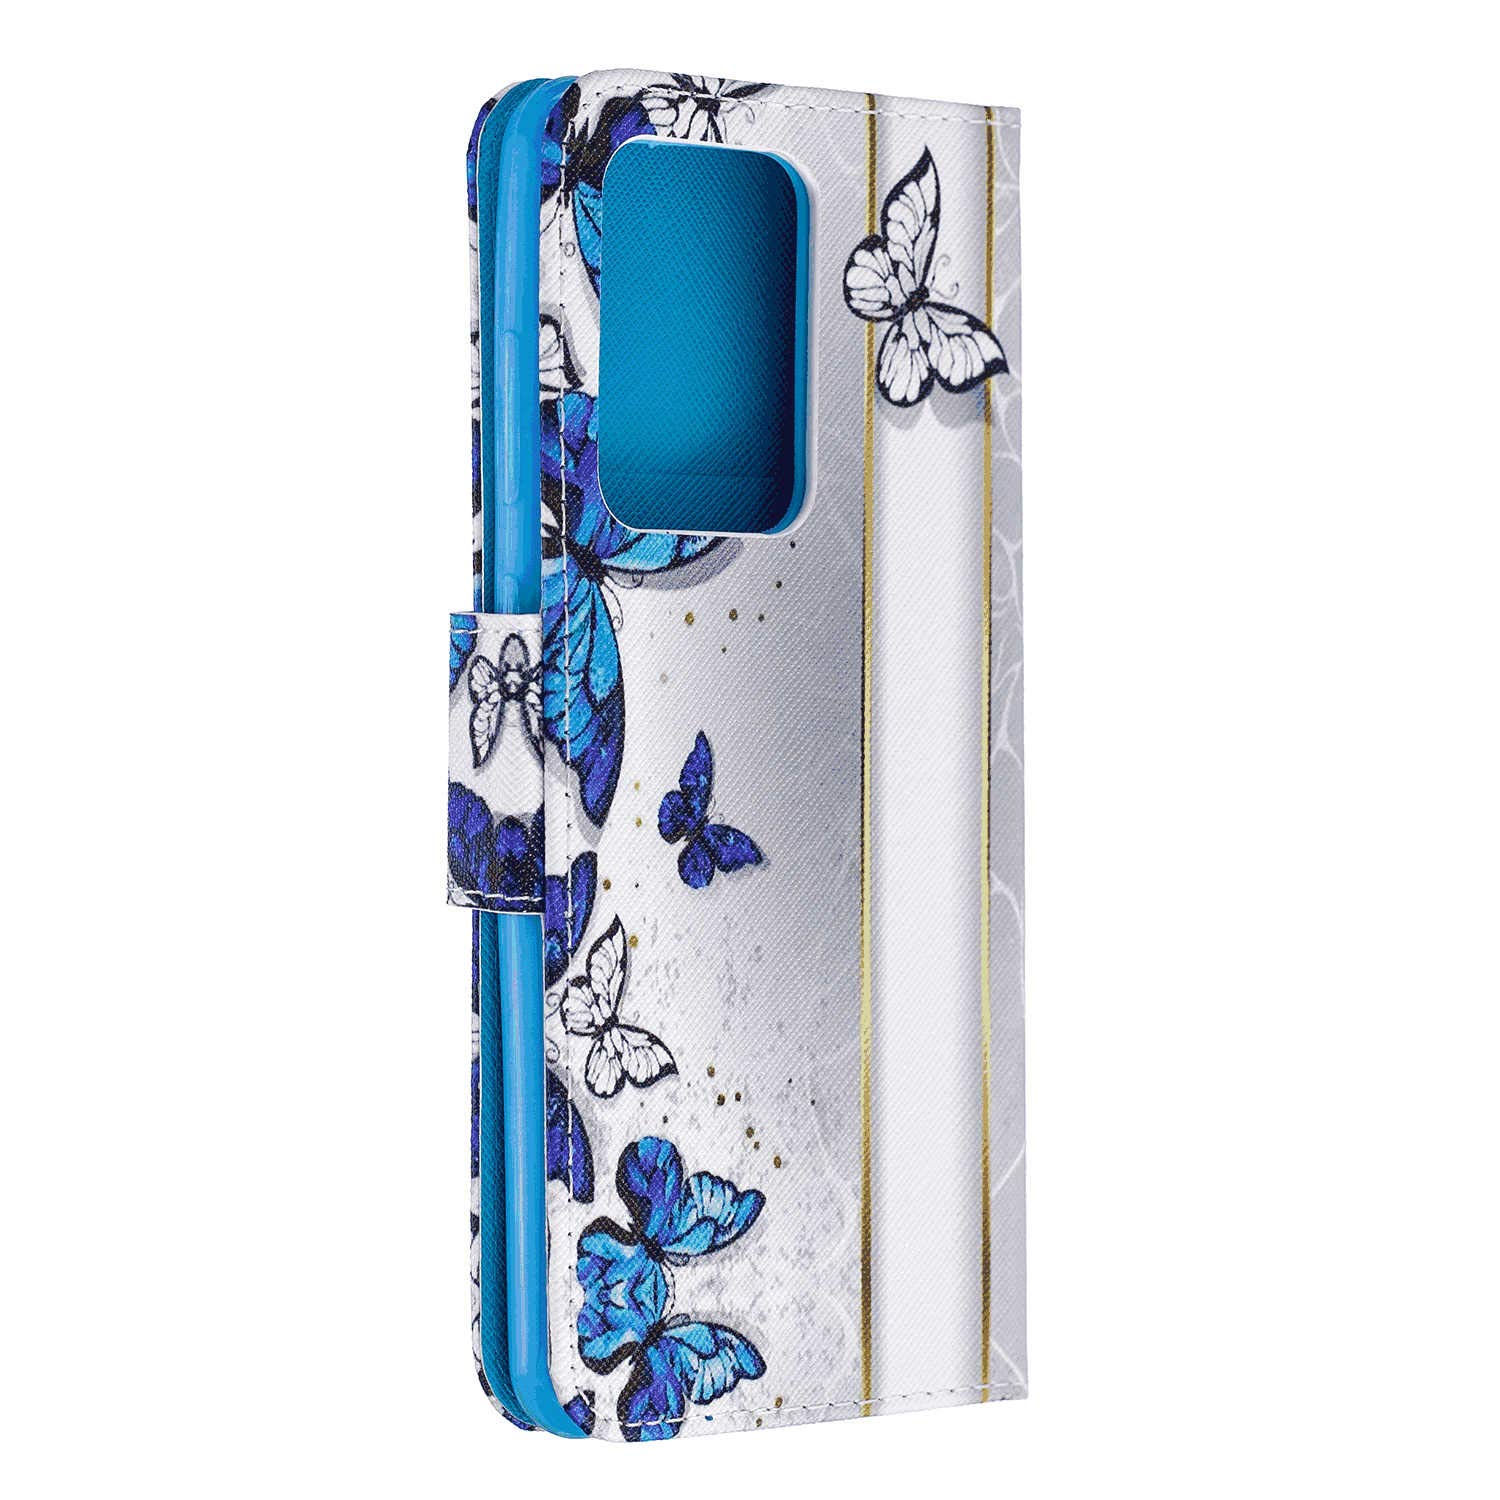 unicorn2 PU Leather Wallet Cover Flip Case for iPhone 11 Pro Compatible with iPhone 11 Pro